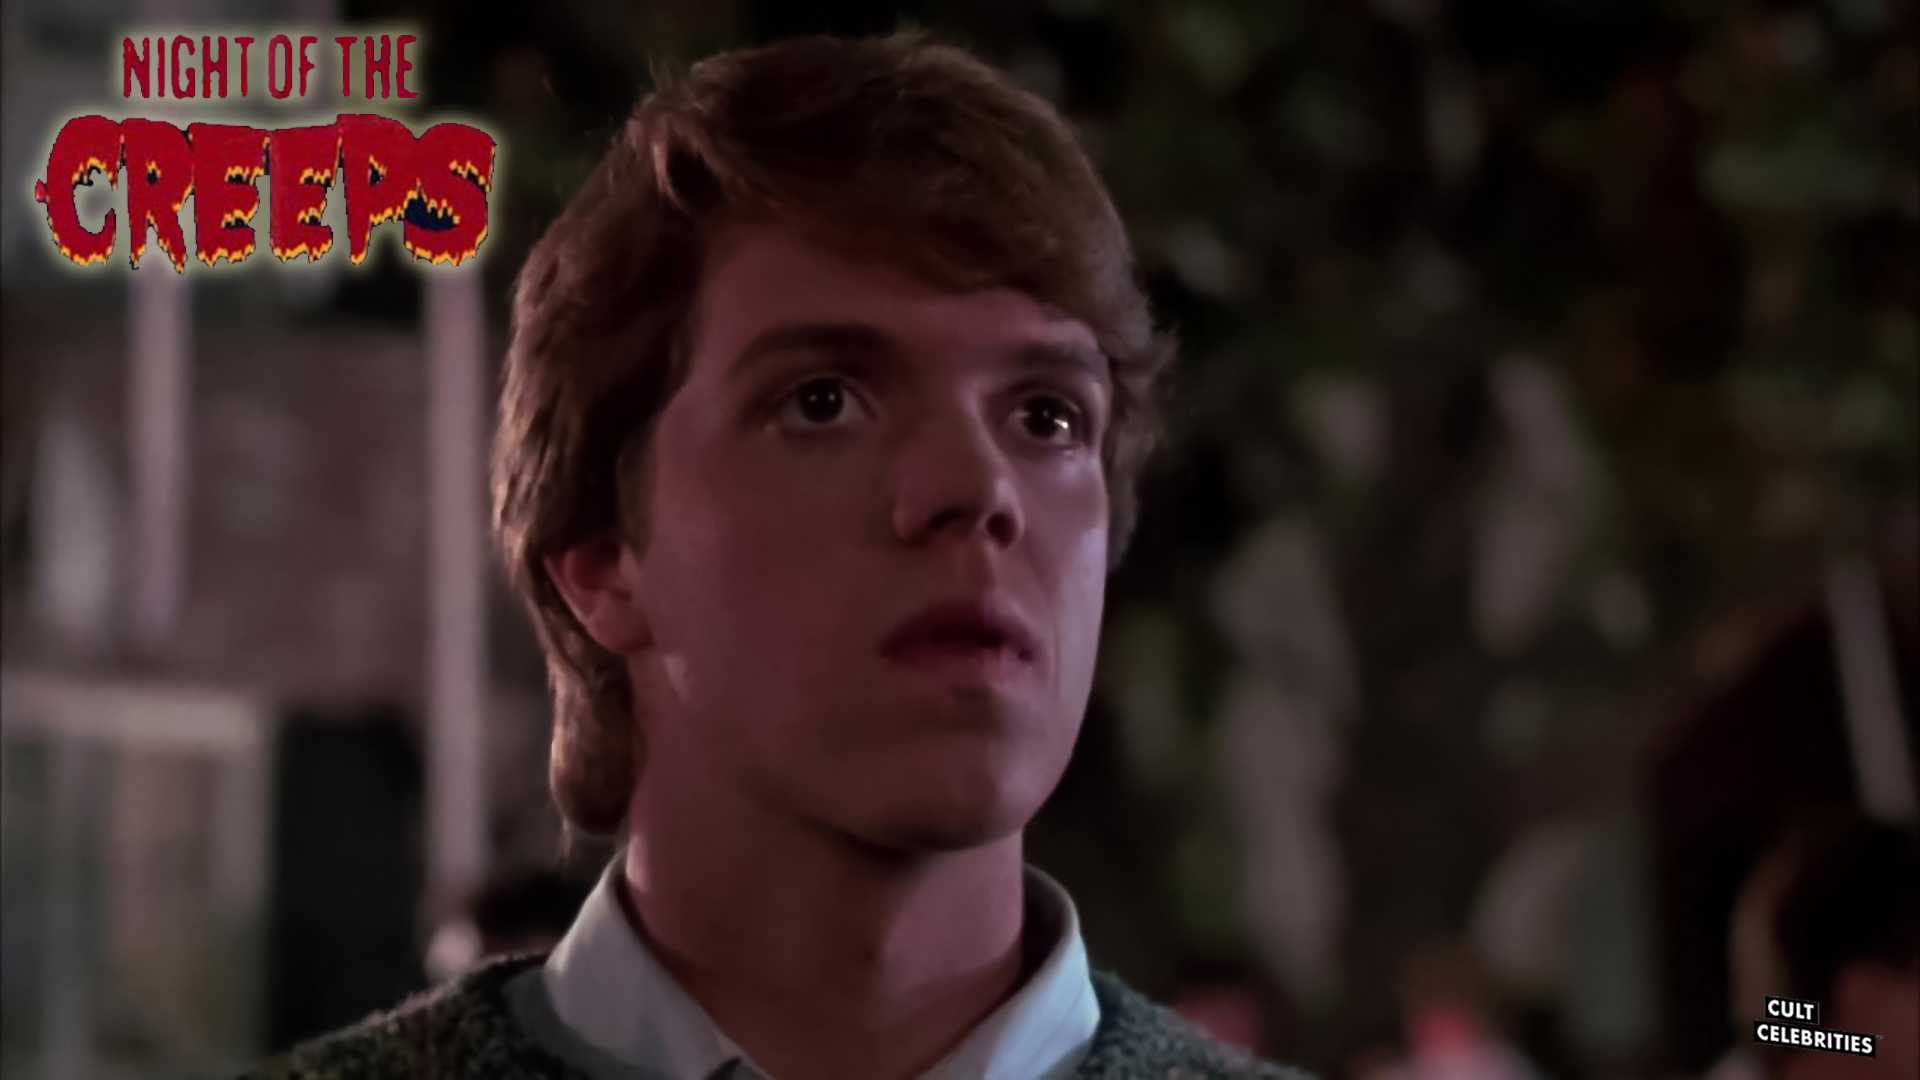 Jason Lively in Night of the Creeps (1986)